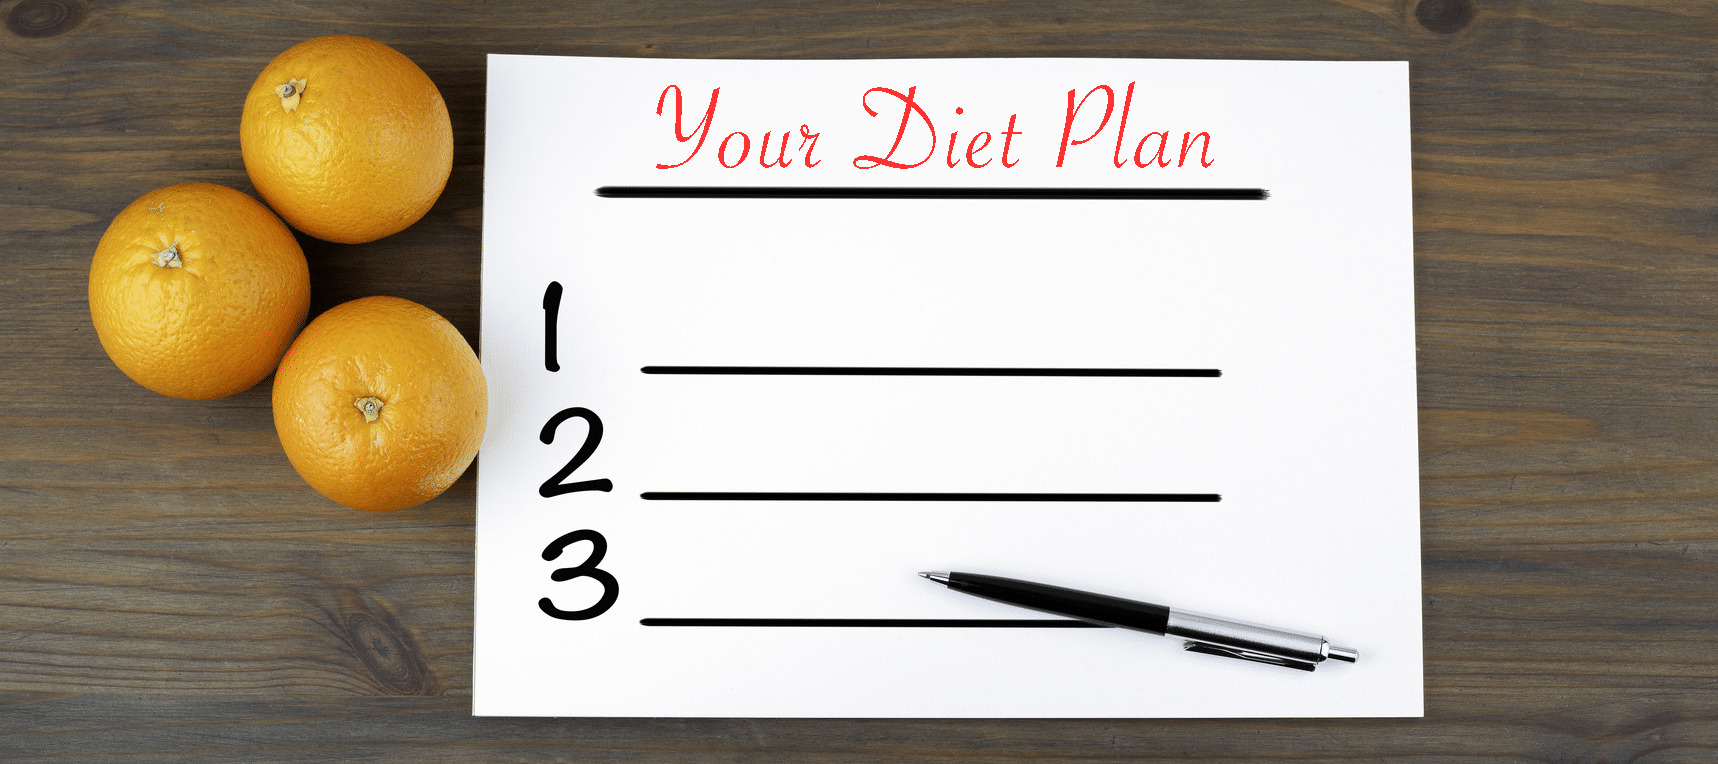 Your Diet Plan